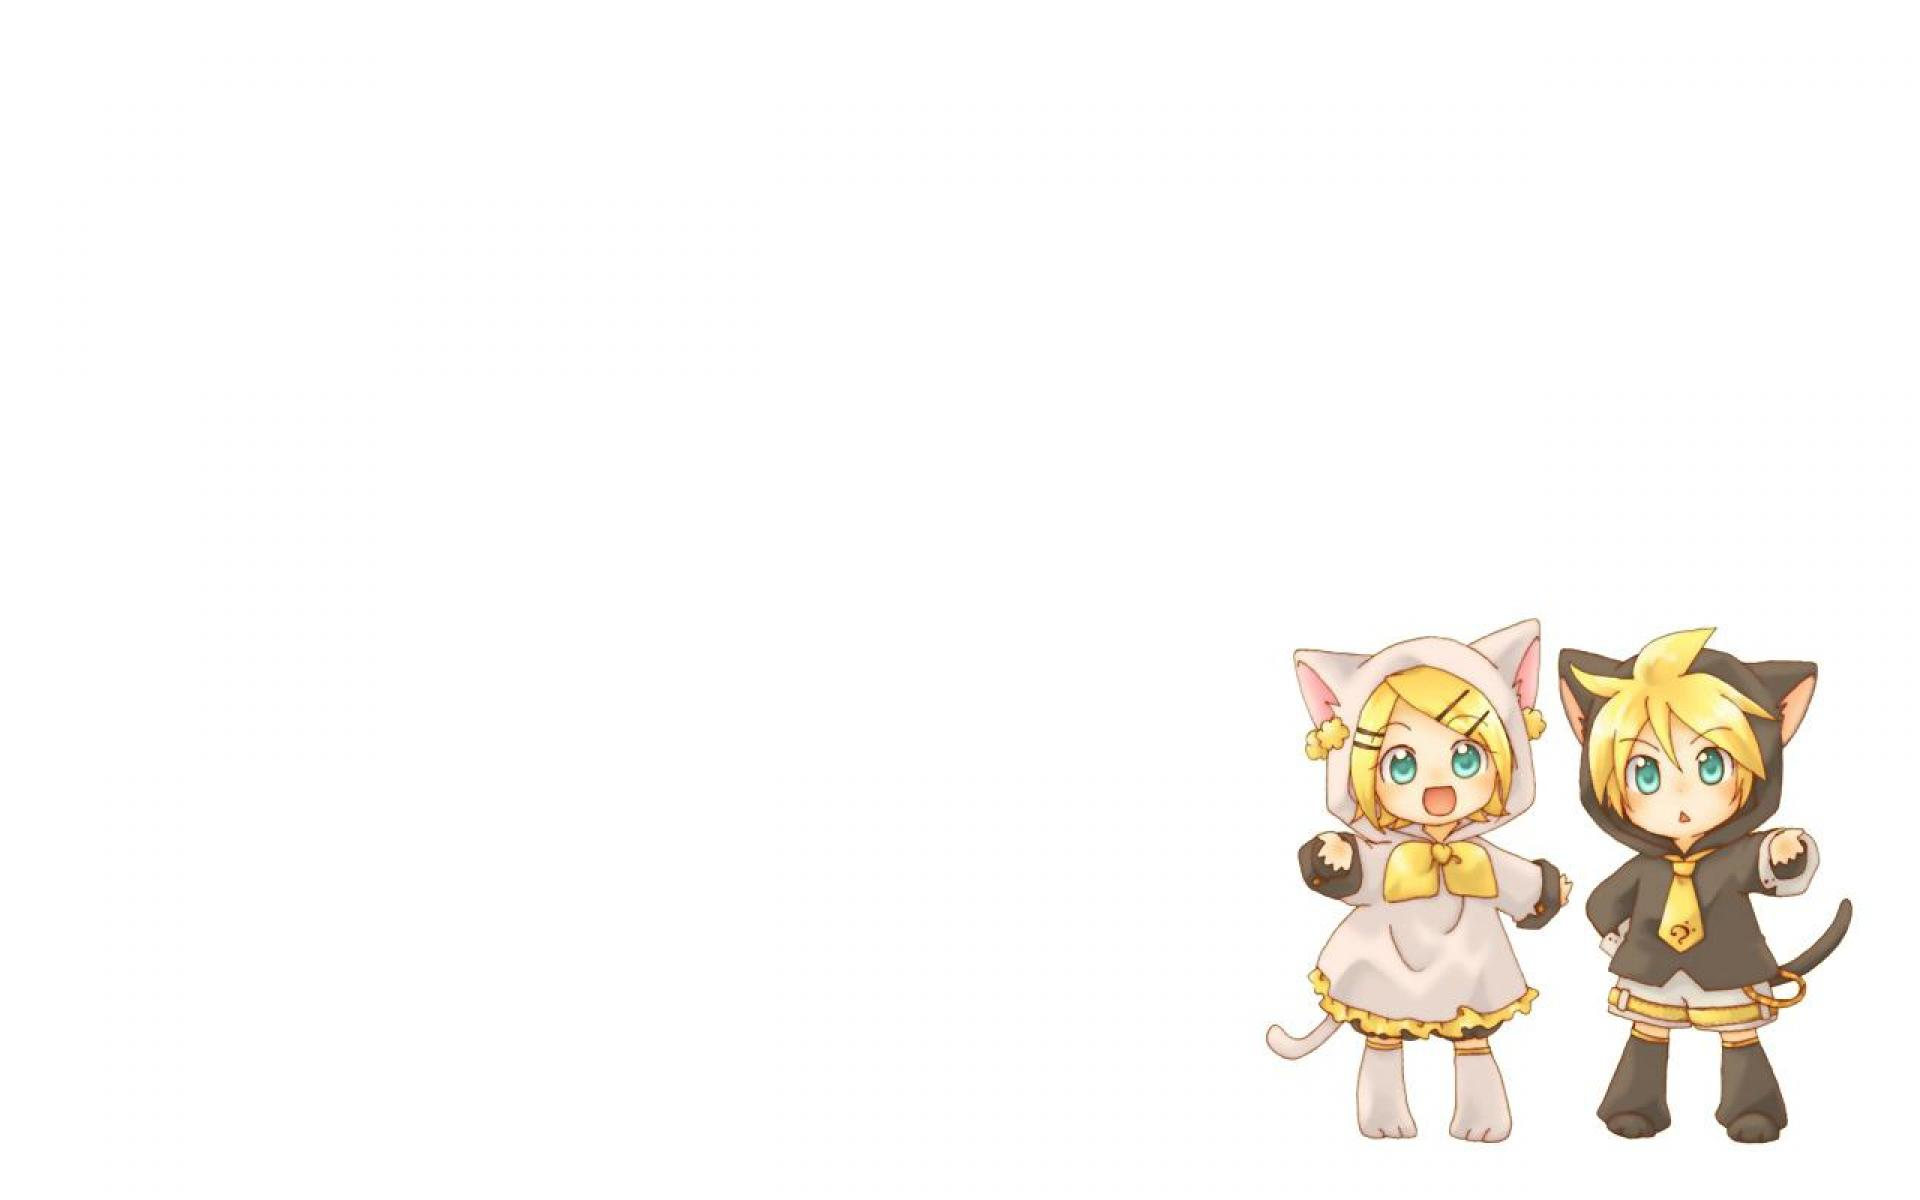 Chibi High Resolution Images